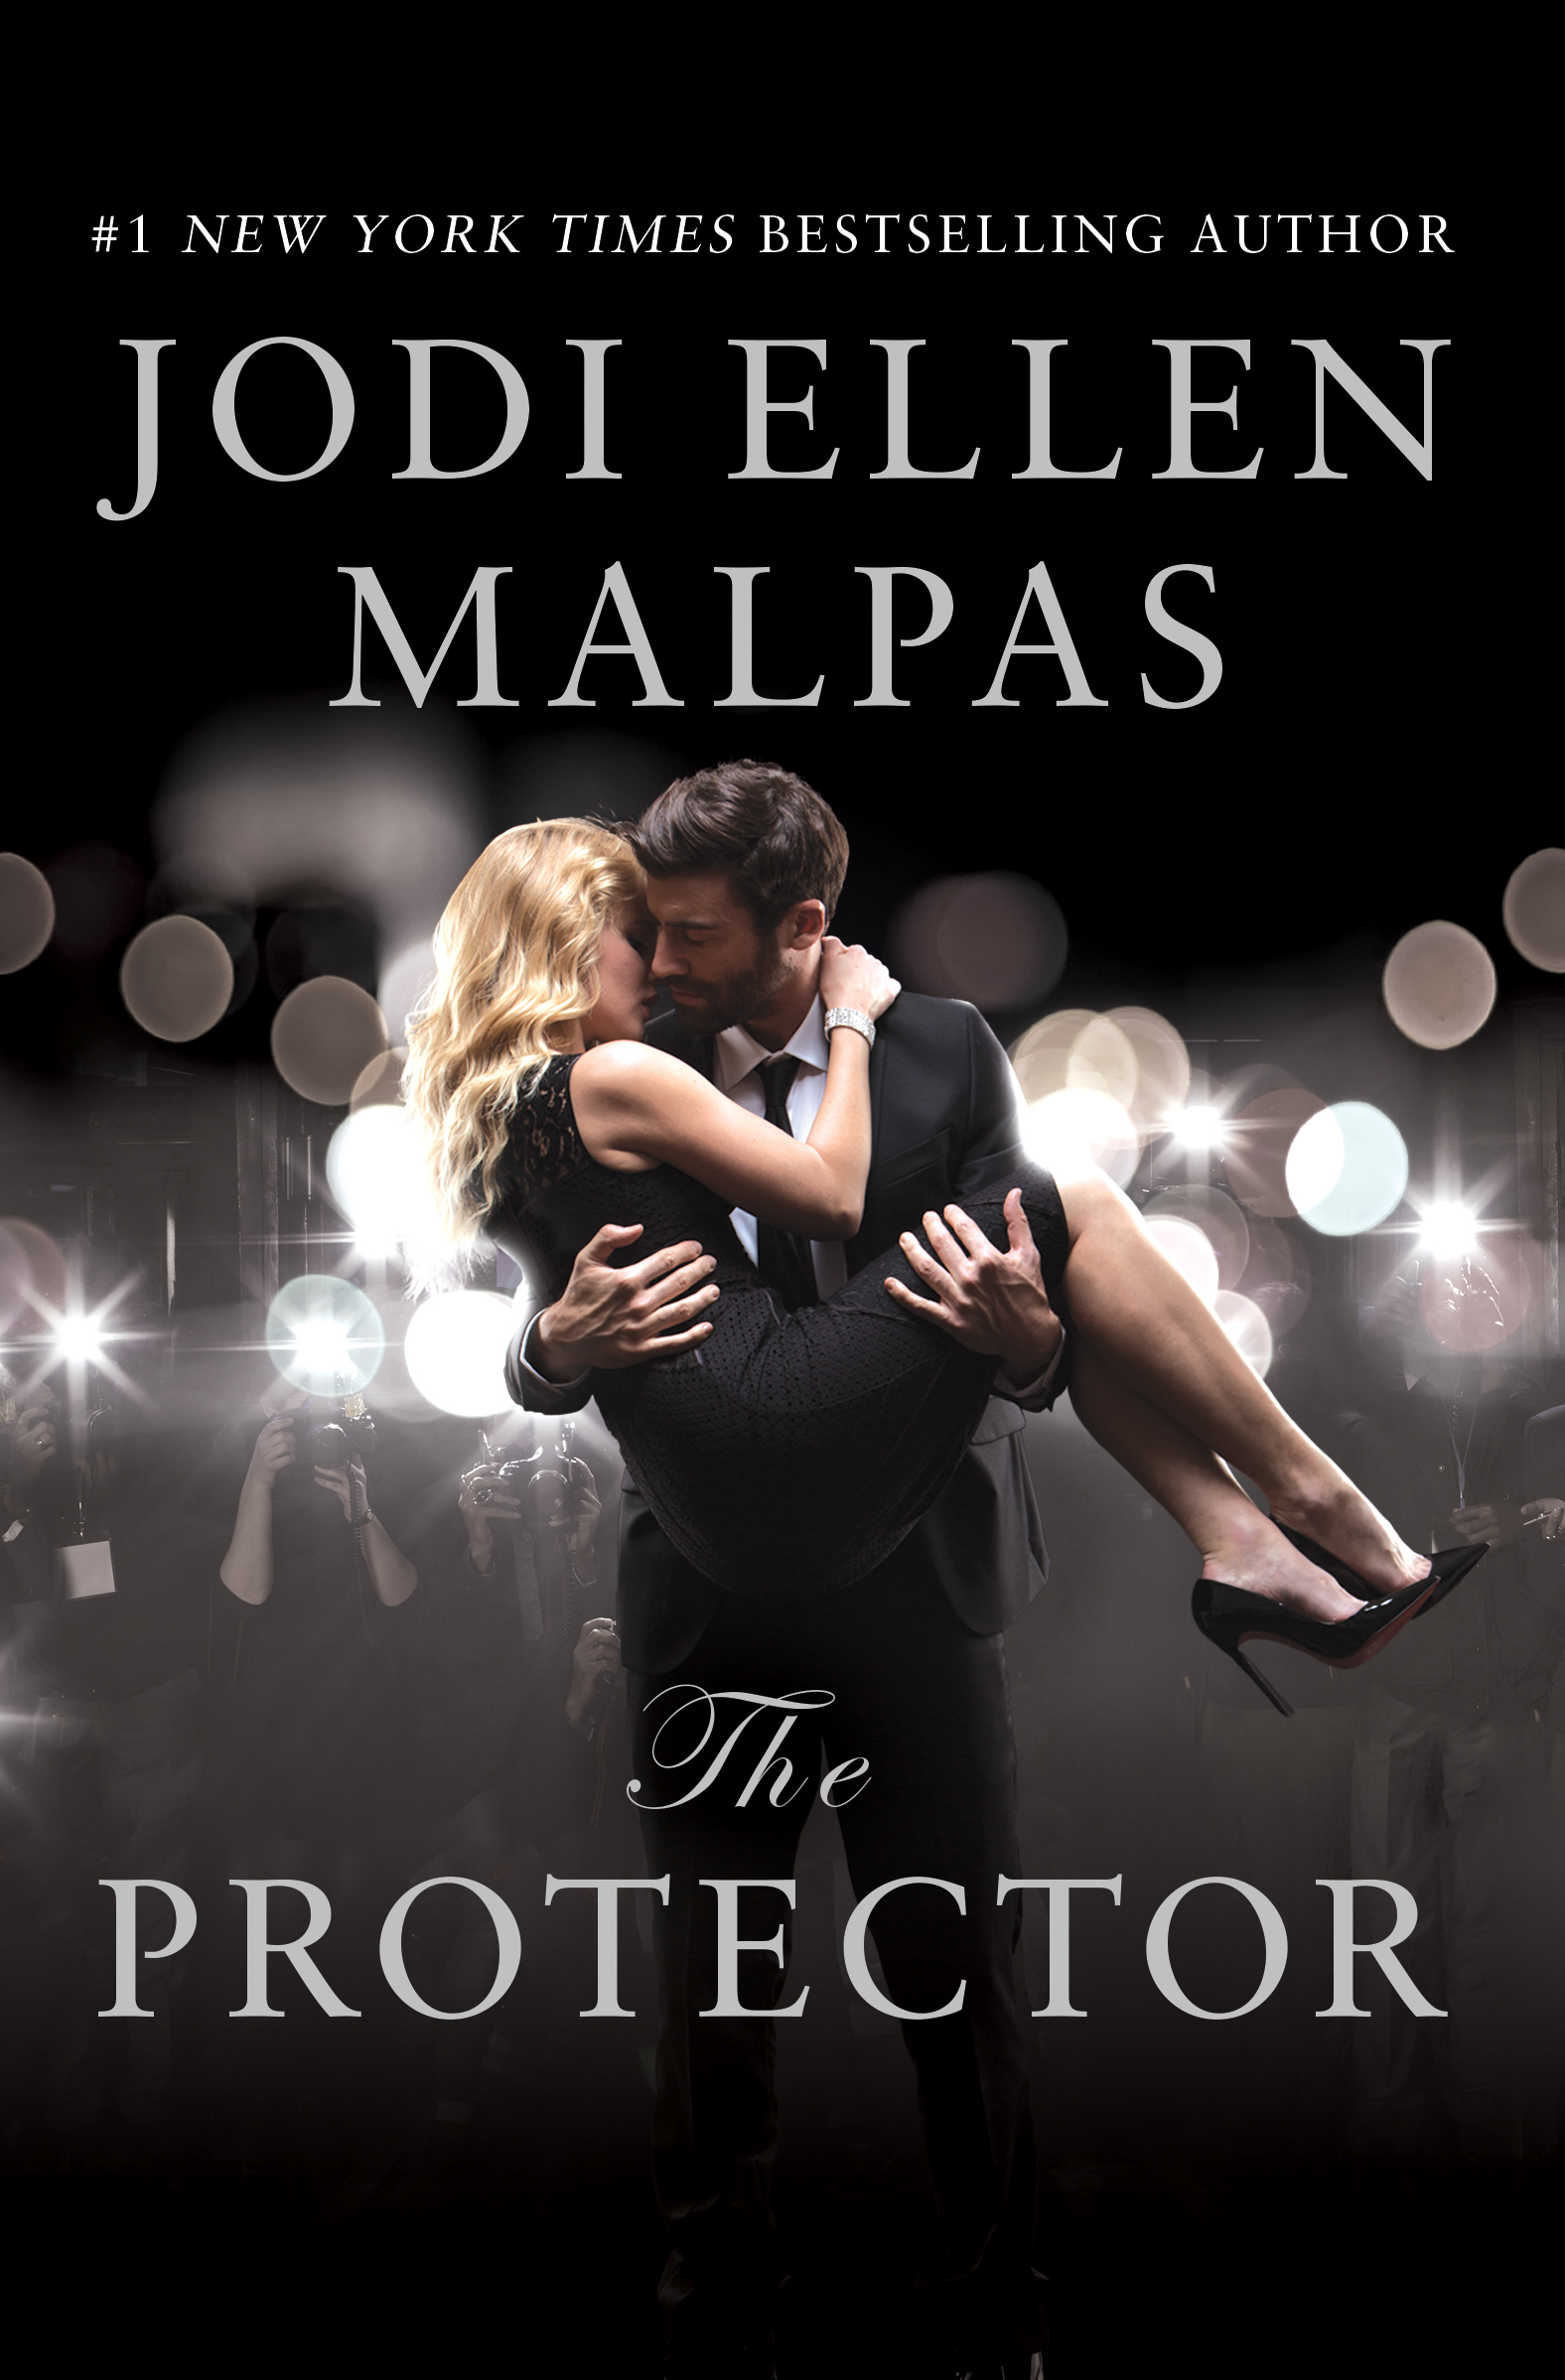 Image result for the protector jodi ellen malpas